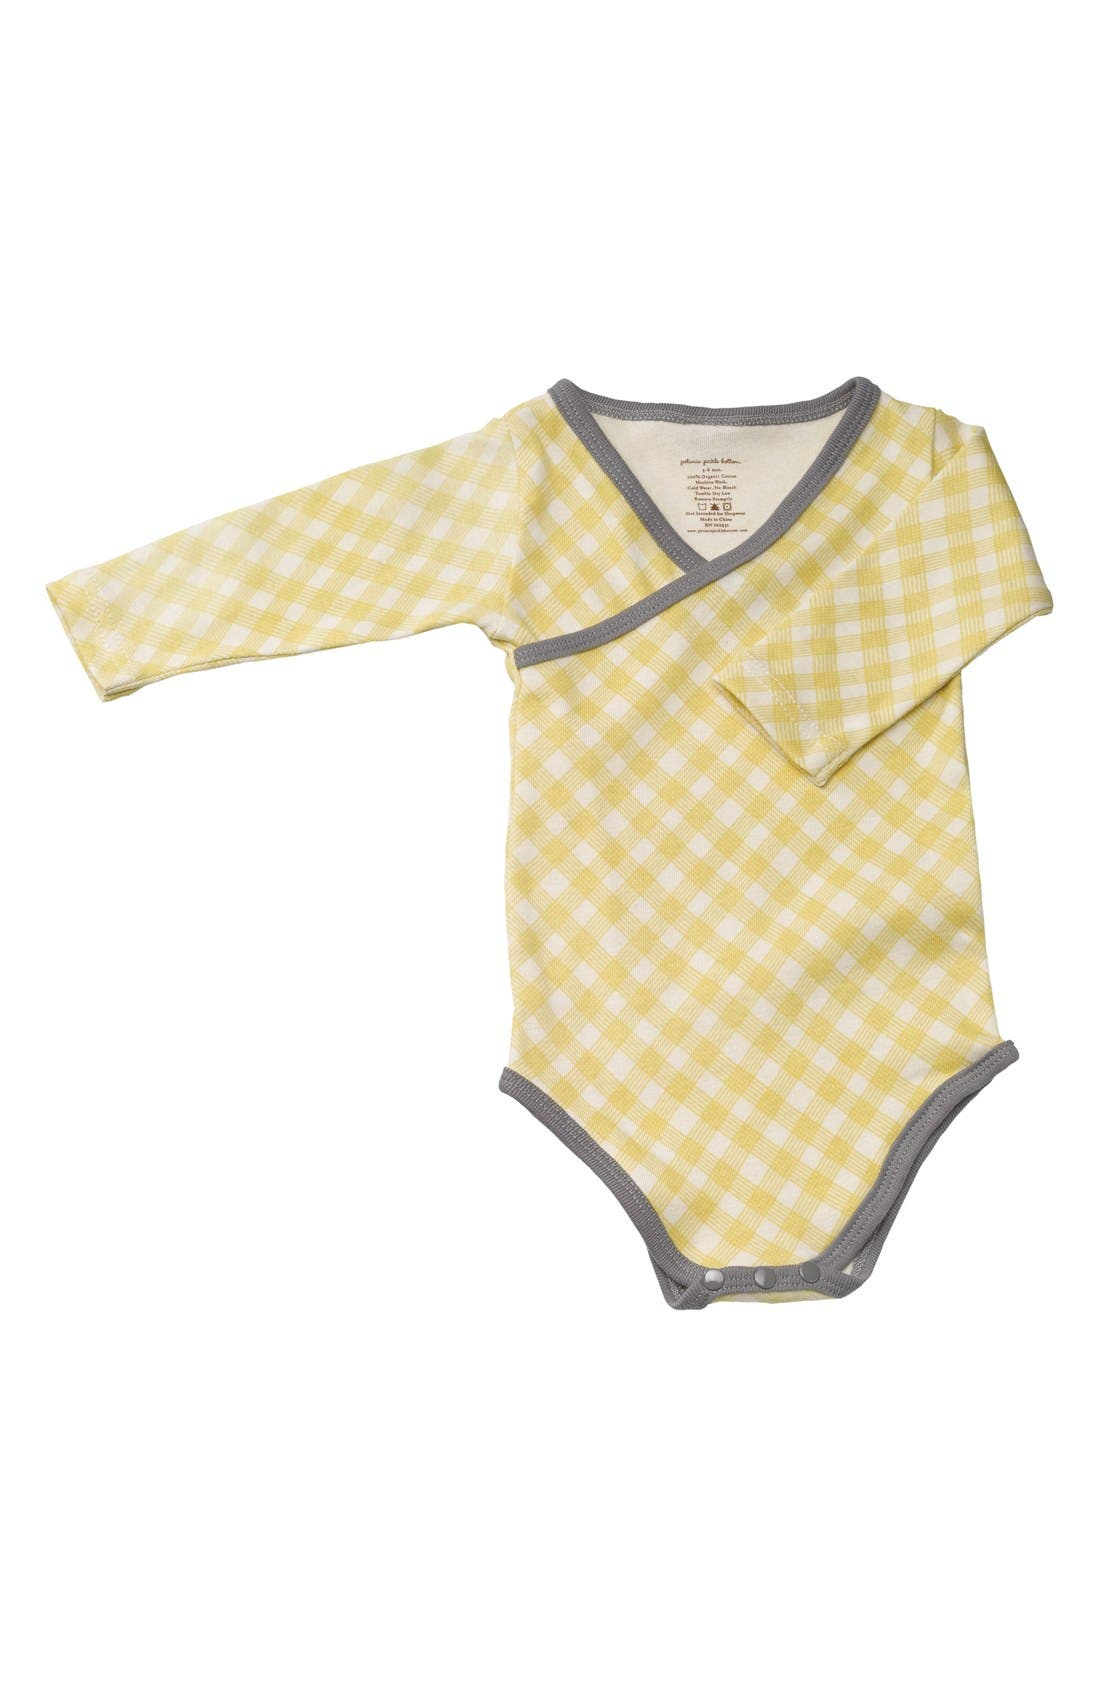 Alternate Image 1 Selected - Petunia Pickle Bottom Organic Cotton Long Sleeve Bodysuit (Baby Girls)